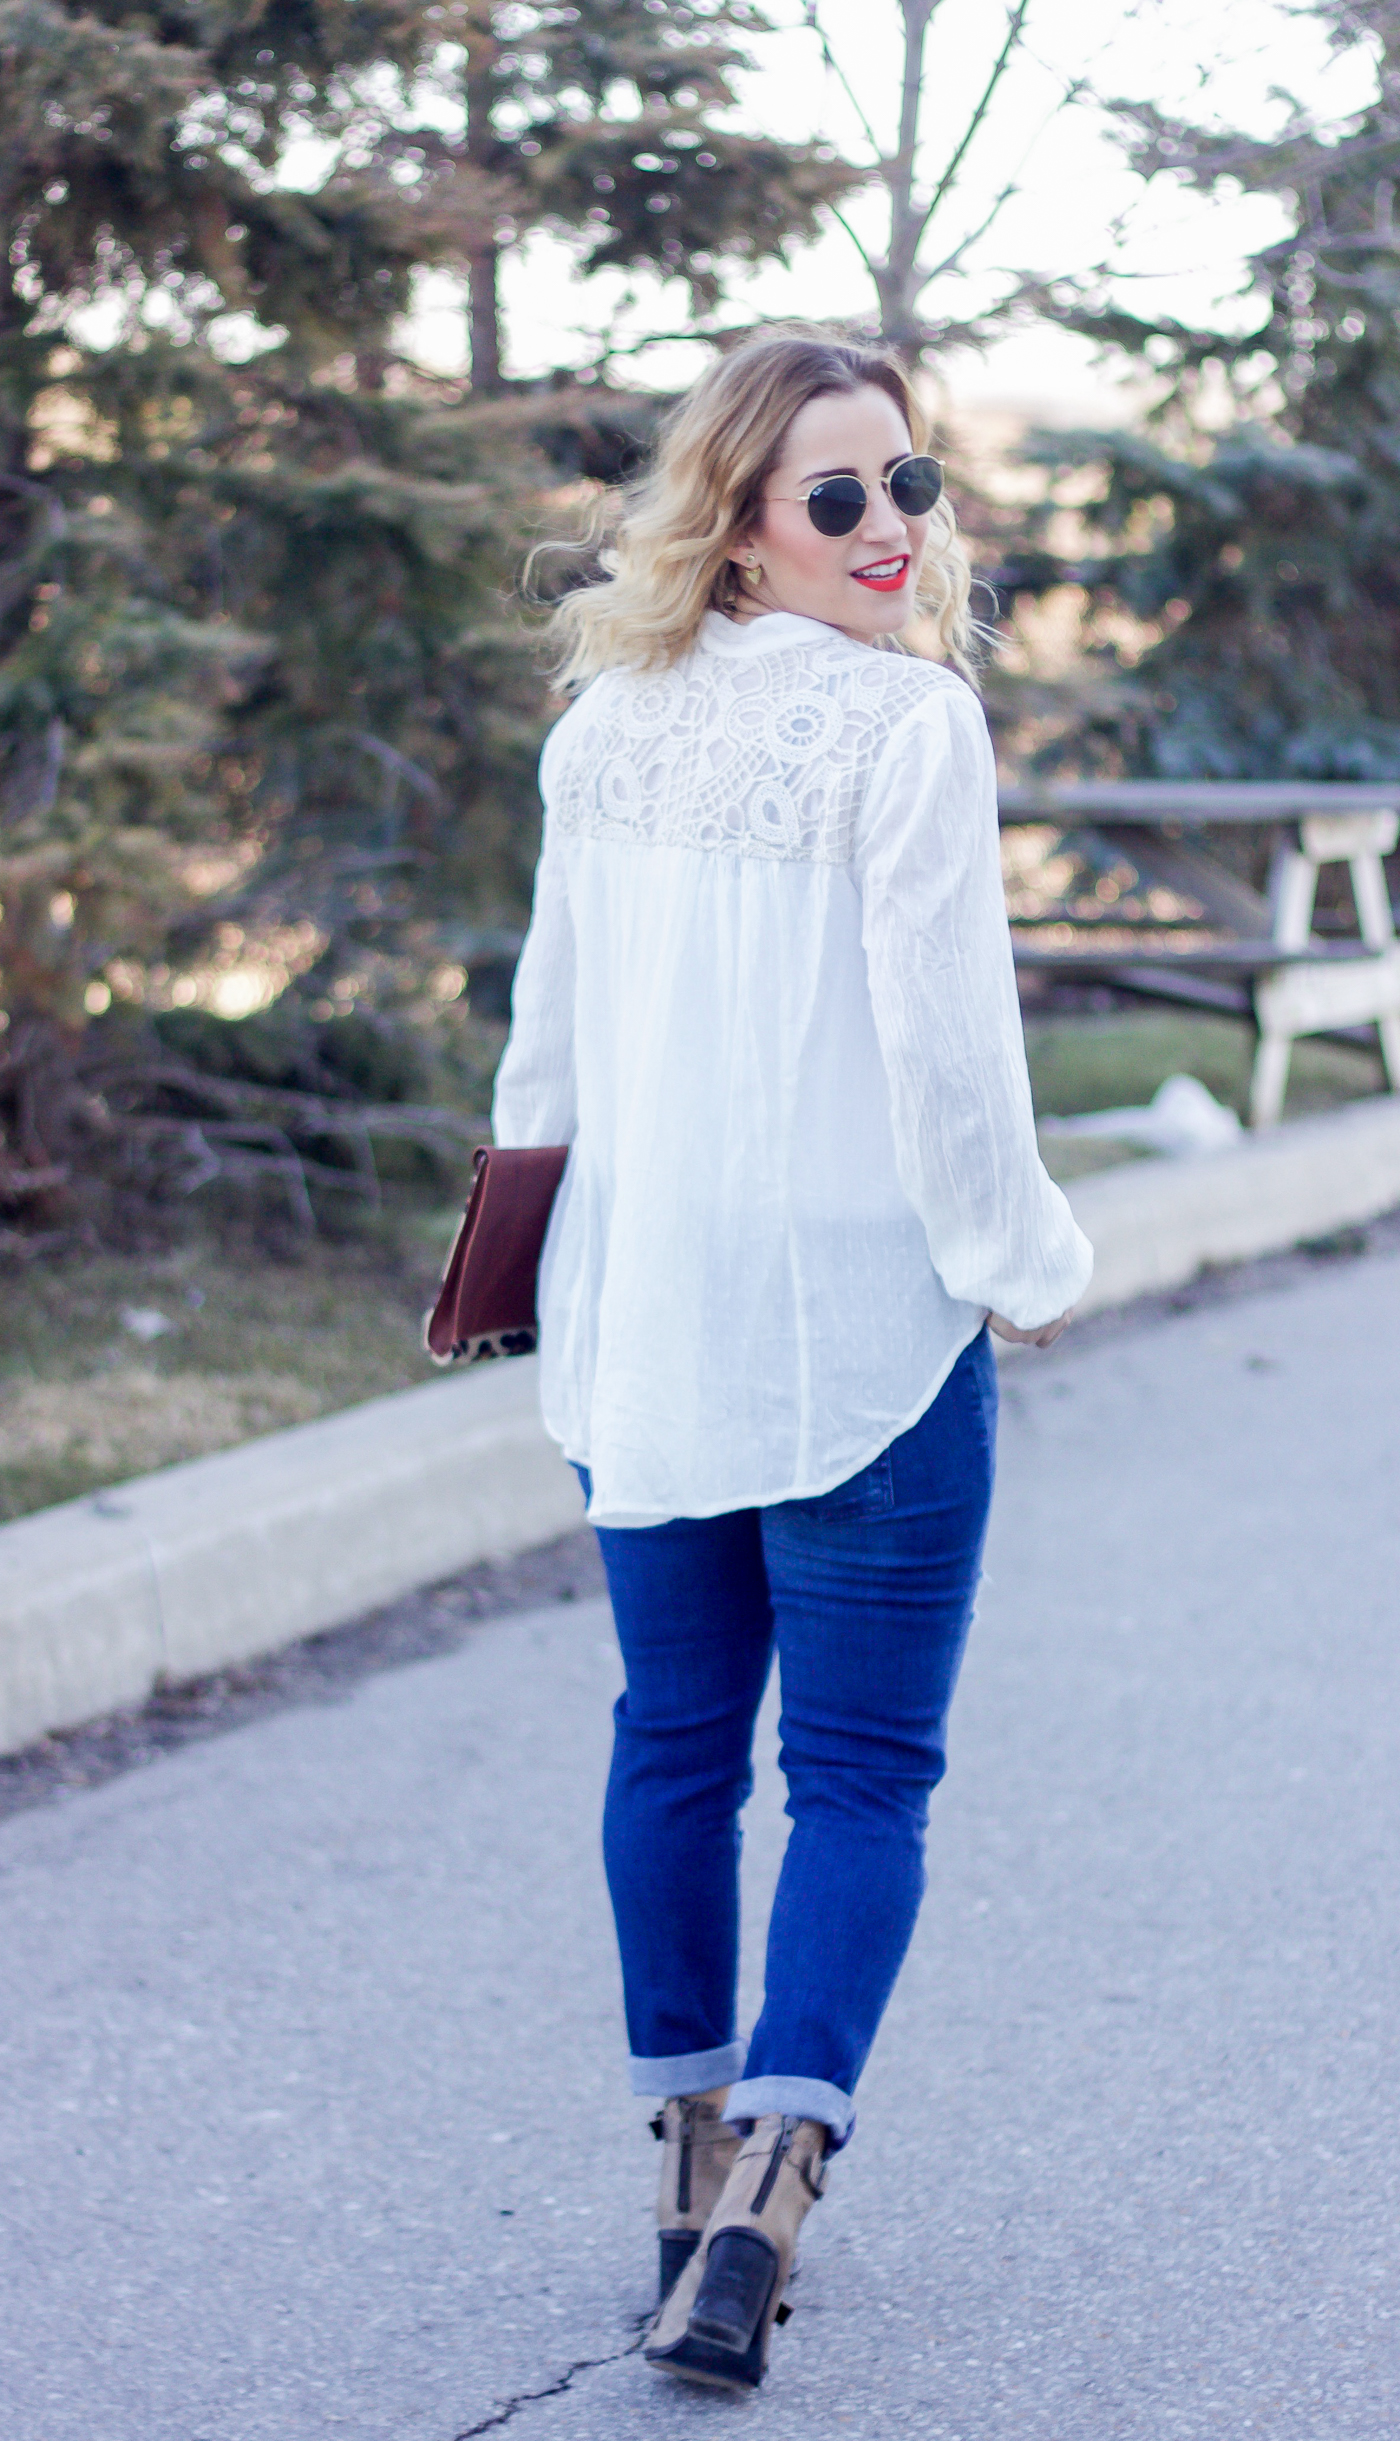 Canadian fashion and lifestyle blogger, Jackie Goldhar of Something About That, wearing a simple, casual spring outfit